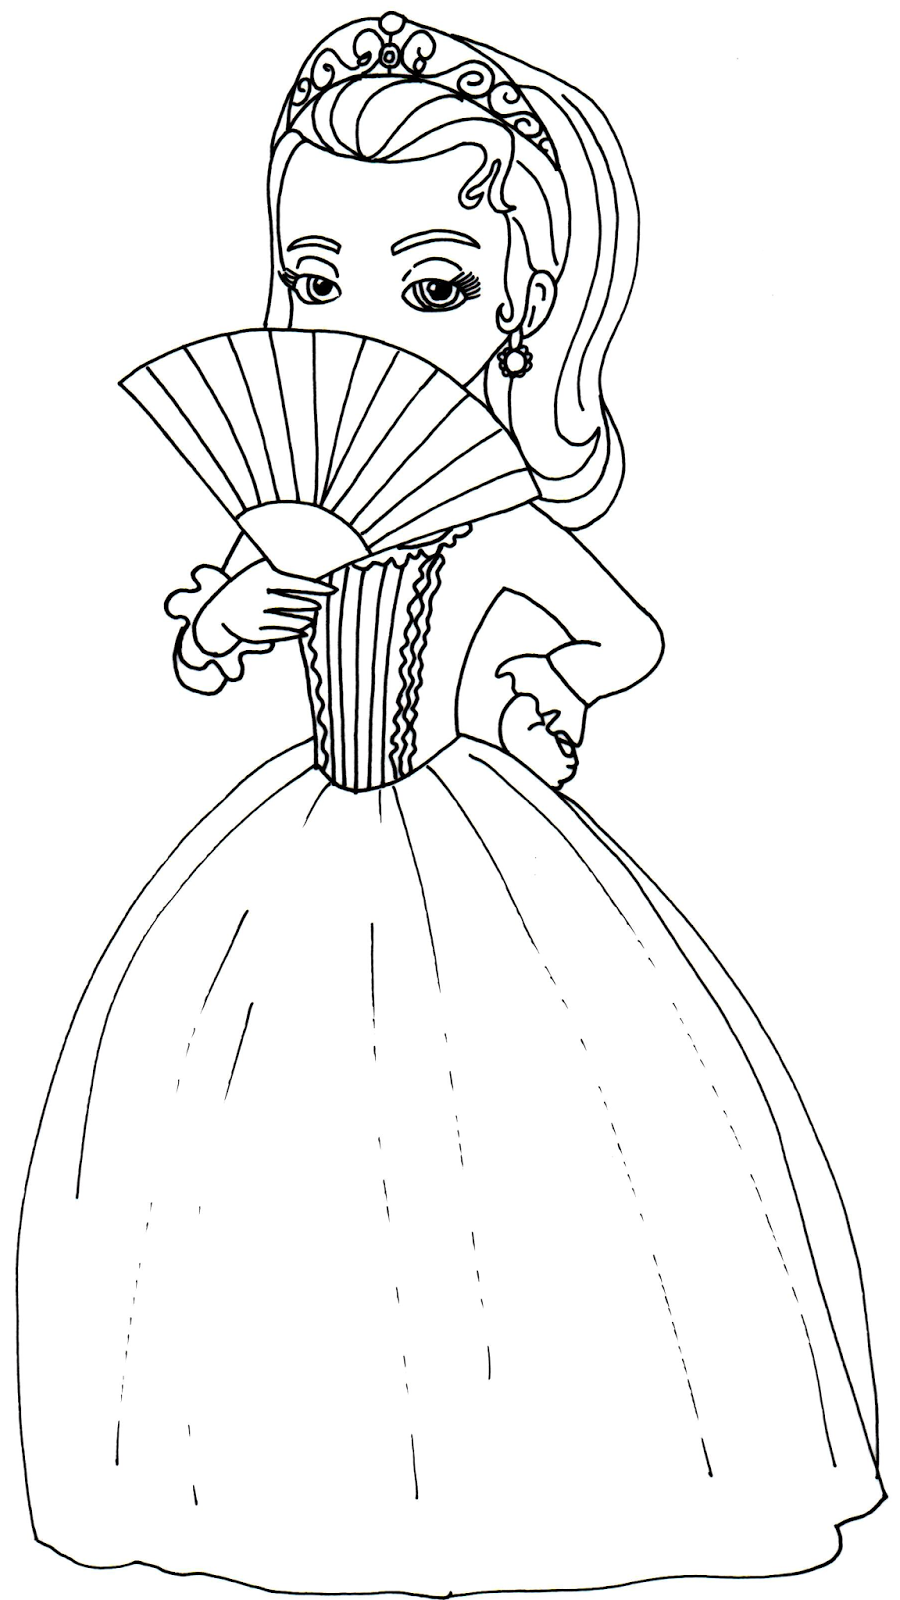 Sofia The First Coloring Pages: Amber | sofia | Pinterest | Amber ...